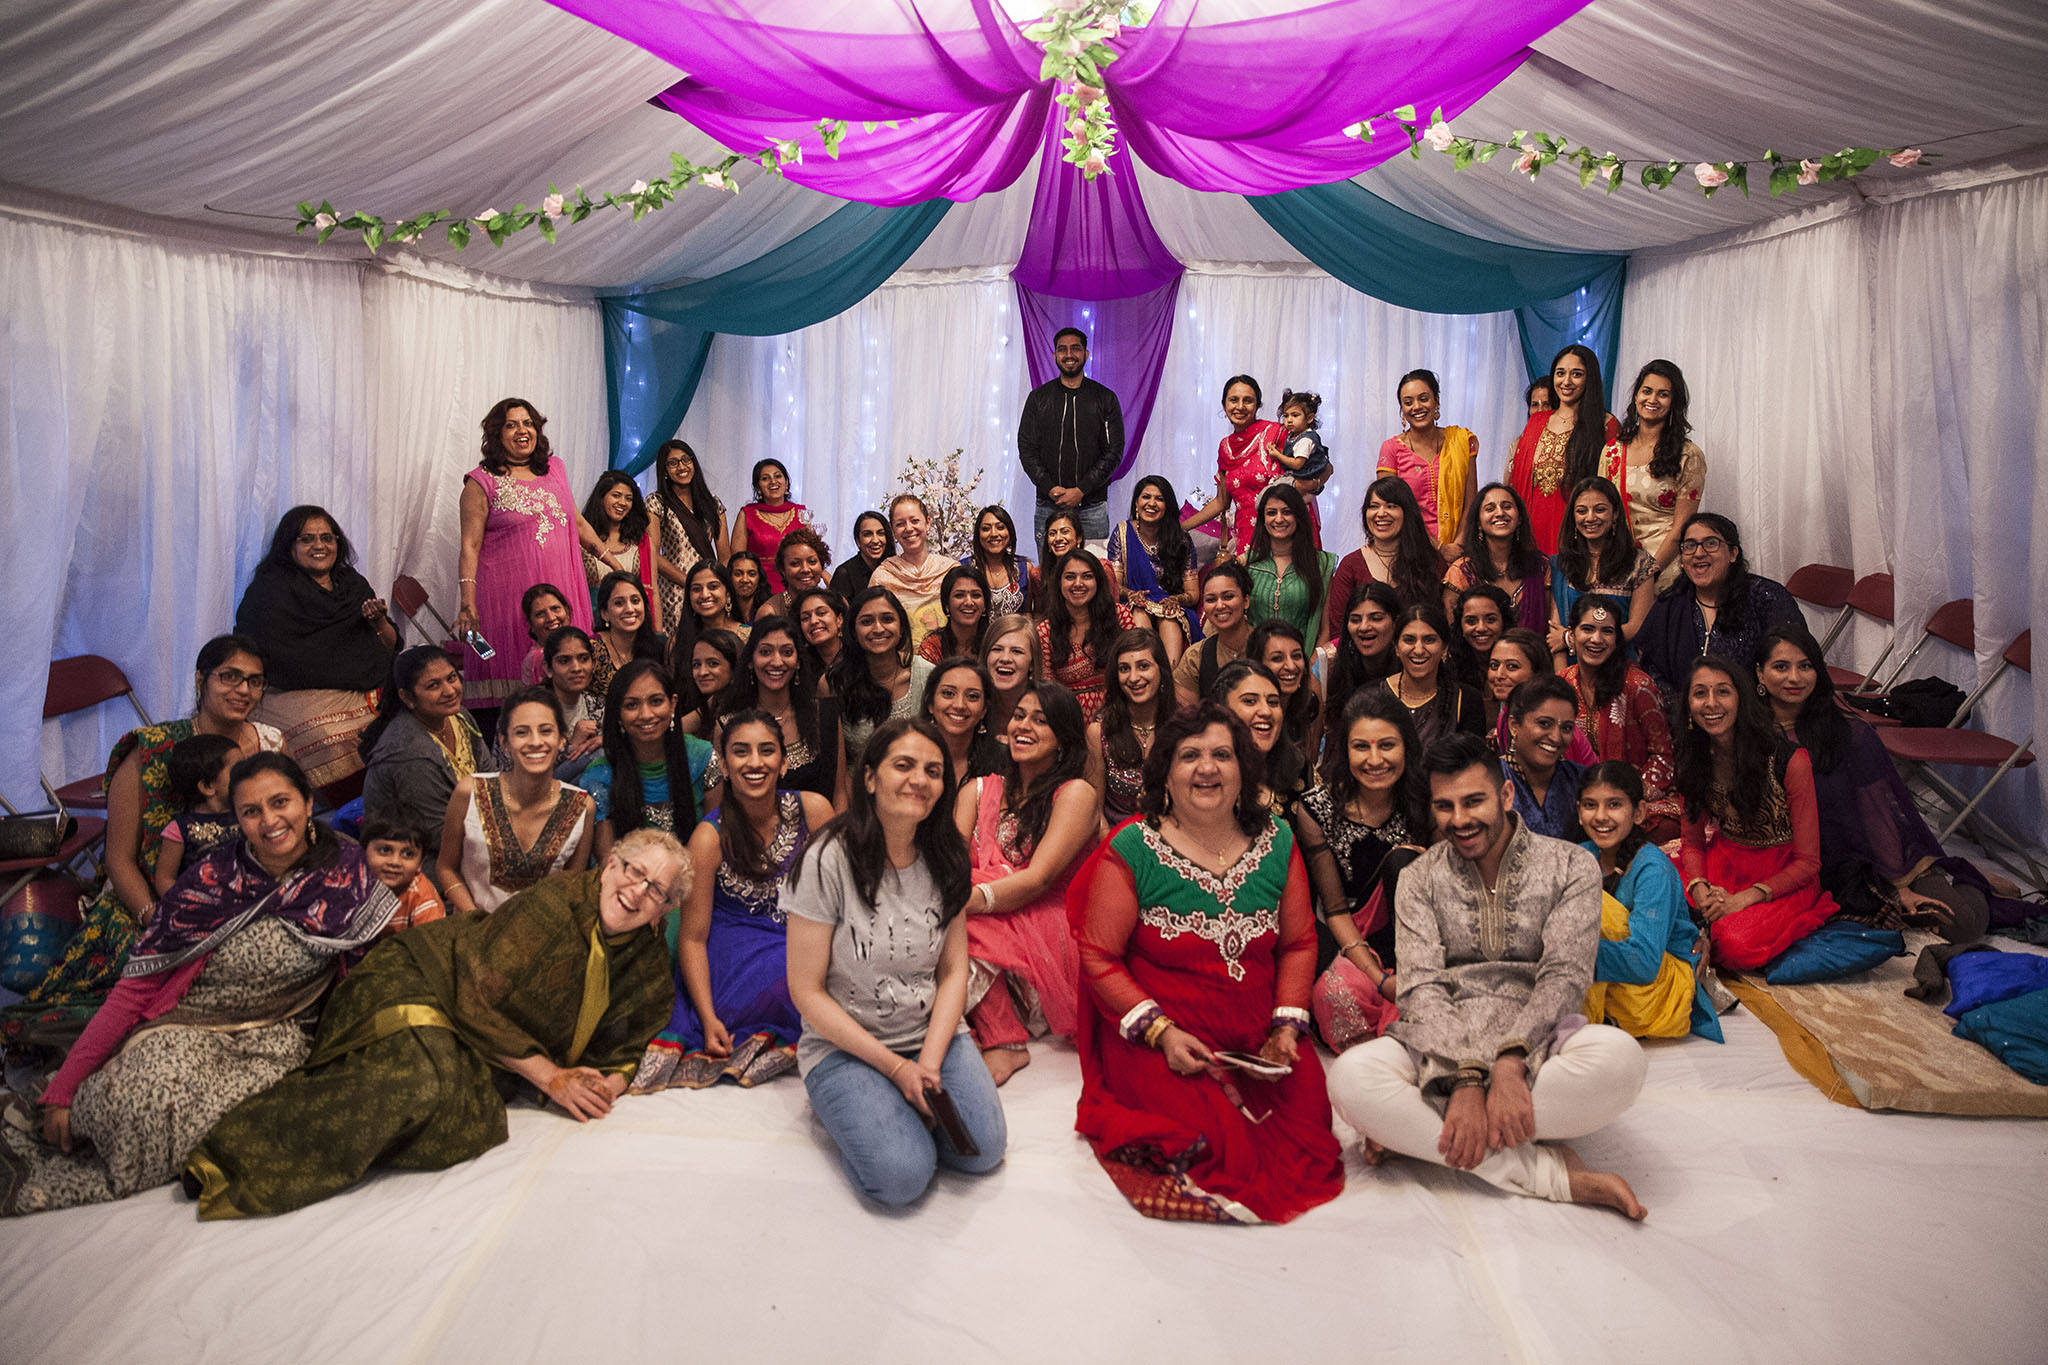 elizabethgphotography_kingslangley_hertfordshire_fineart_indian_wedding_mehndi_photography_jigna_bhuja_16.jpg